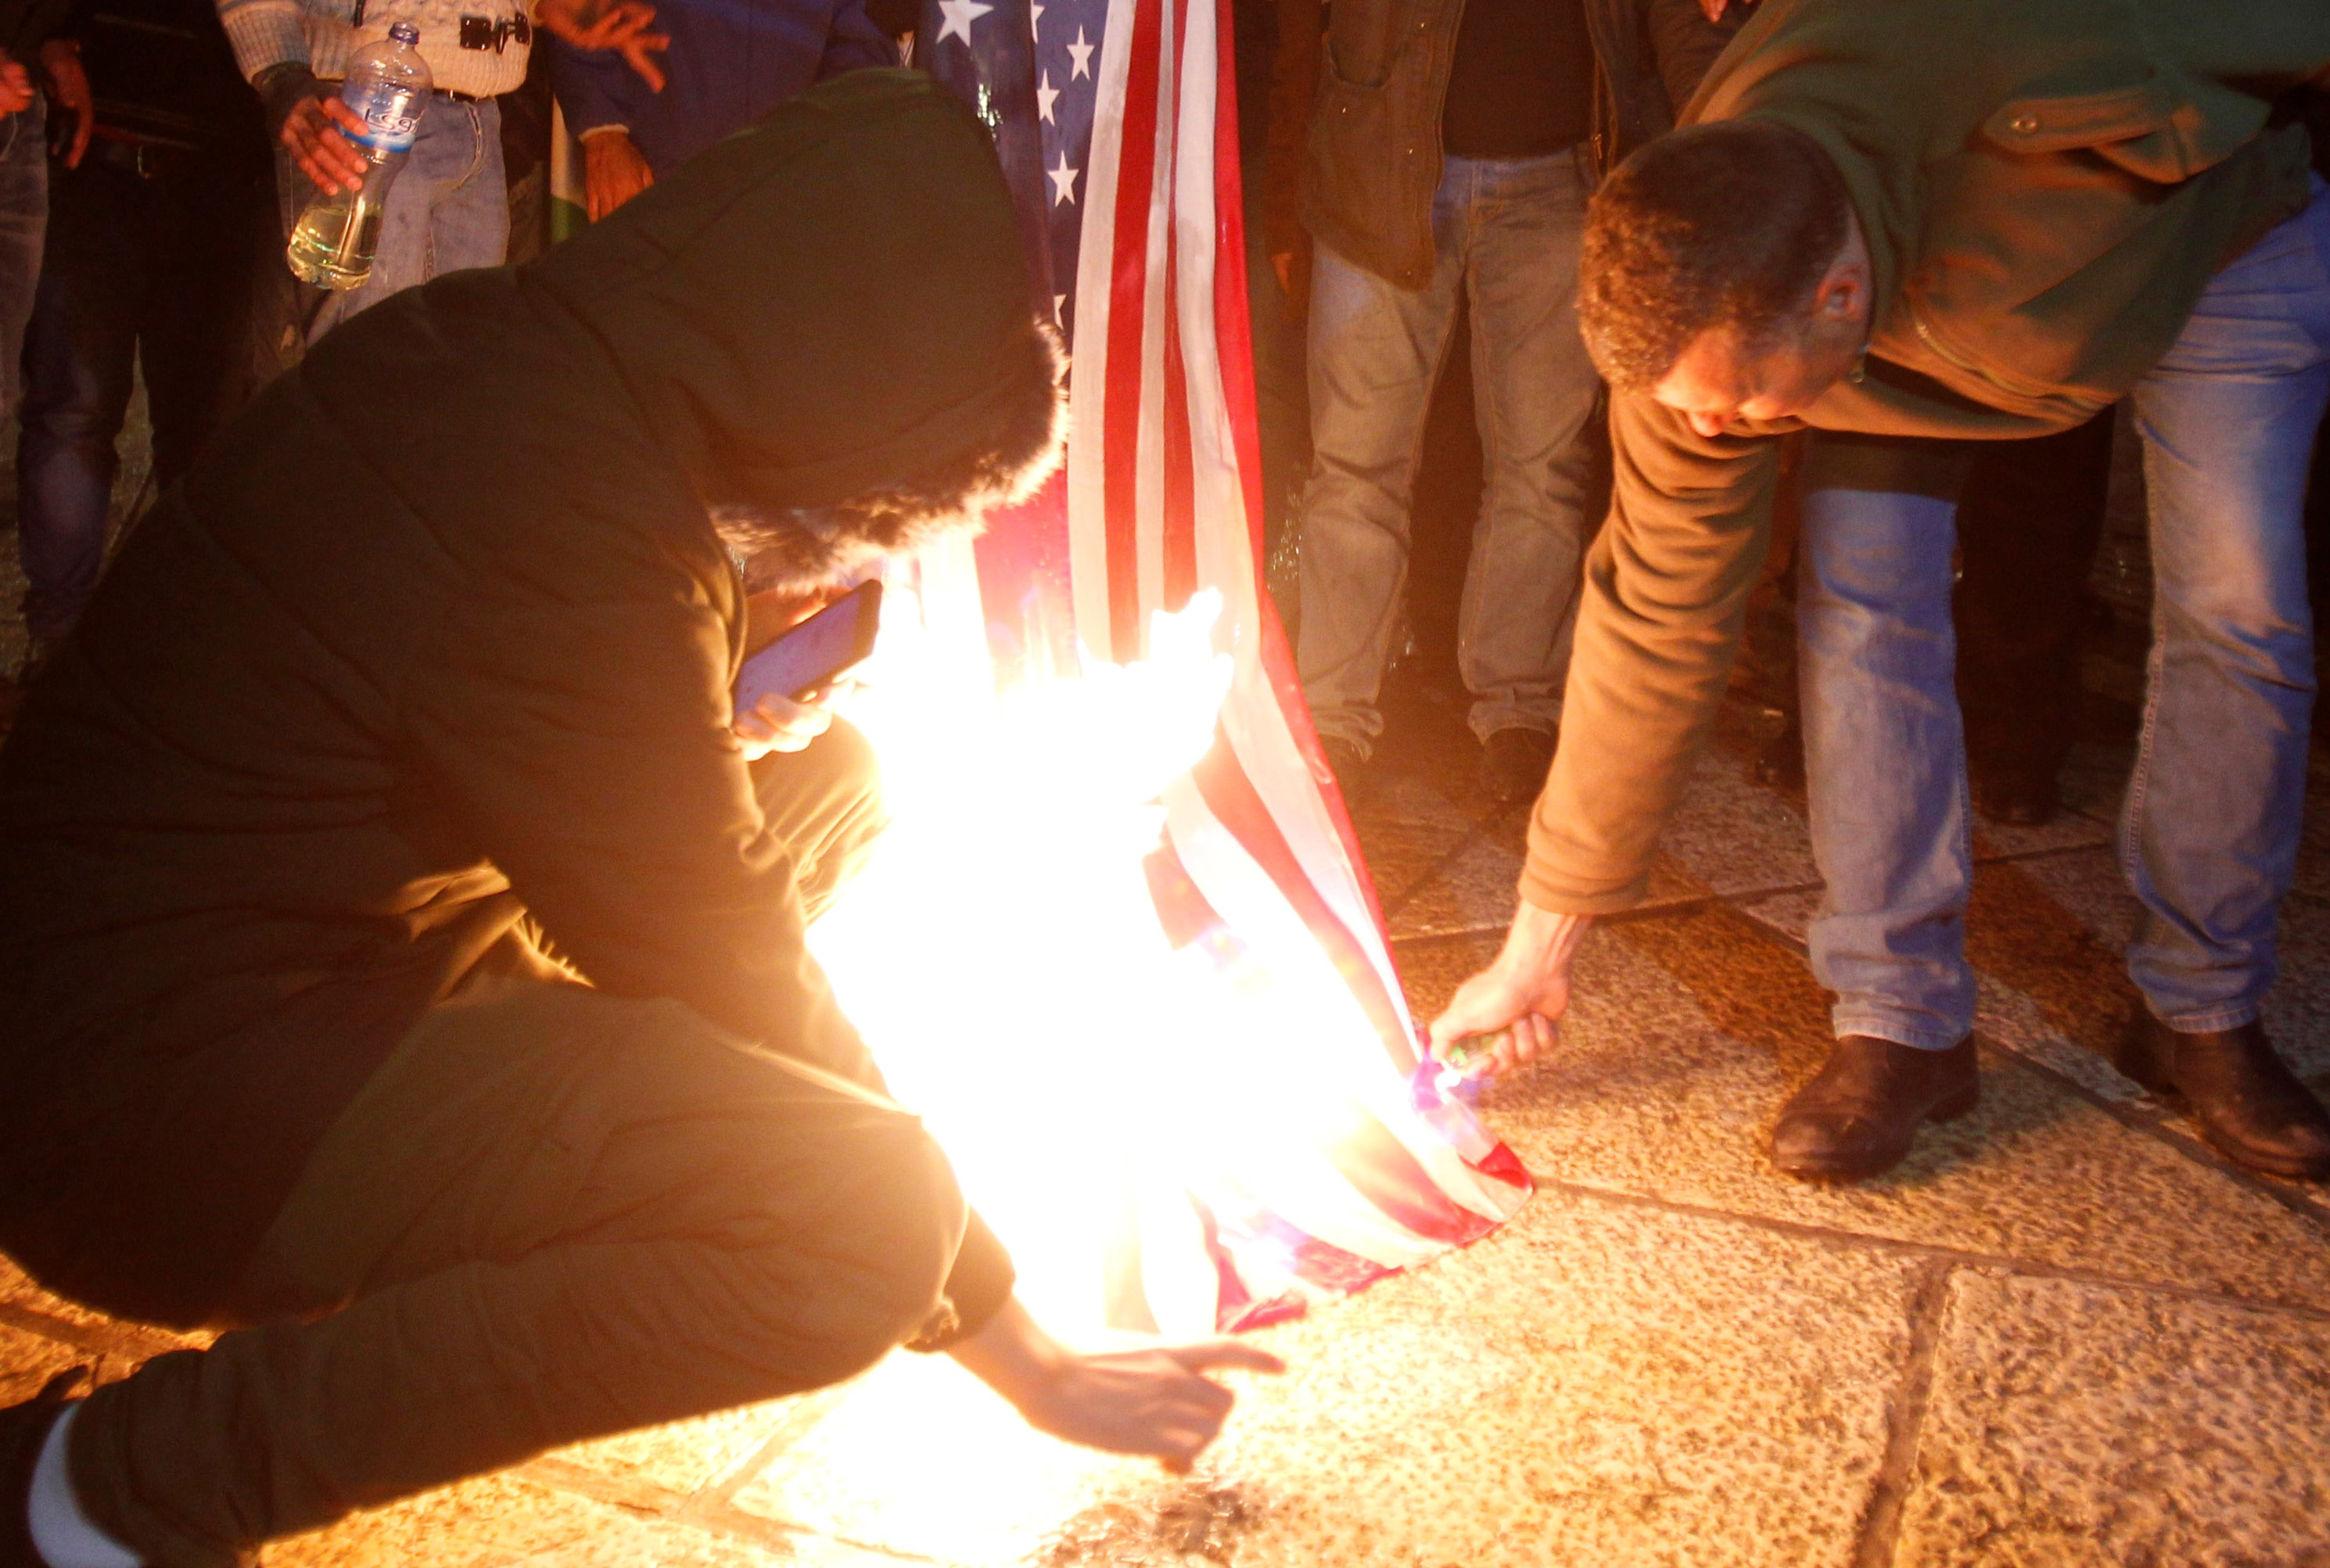 Palestinian demonstrators burn the US flag in Bethlehem's Manger Square in protest to the declaration of the US president declaring Jerusalem as Israel's capital on December 6, 2017. Abbas said the United States can no longer play the role of peace broker after Donald Trump's decision on Wednesday to recognise Jerusalem as Israel's capital. / AFP PHOTO / Musa AL SHAER